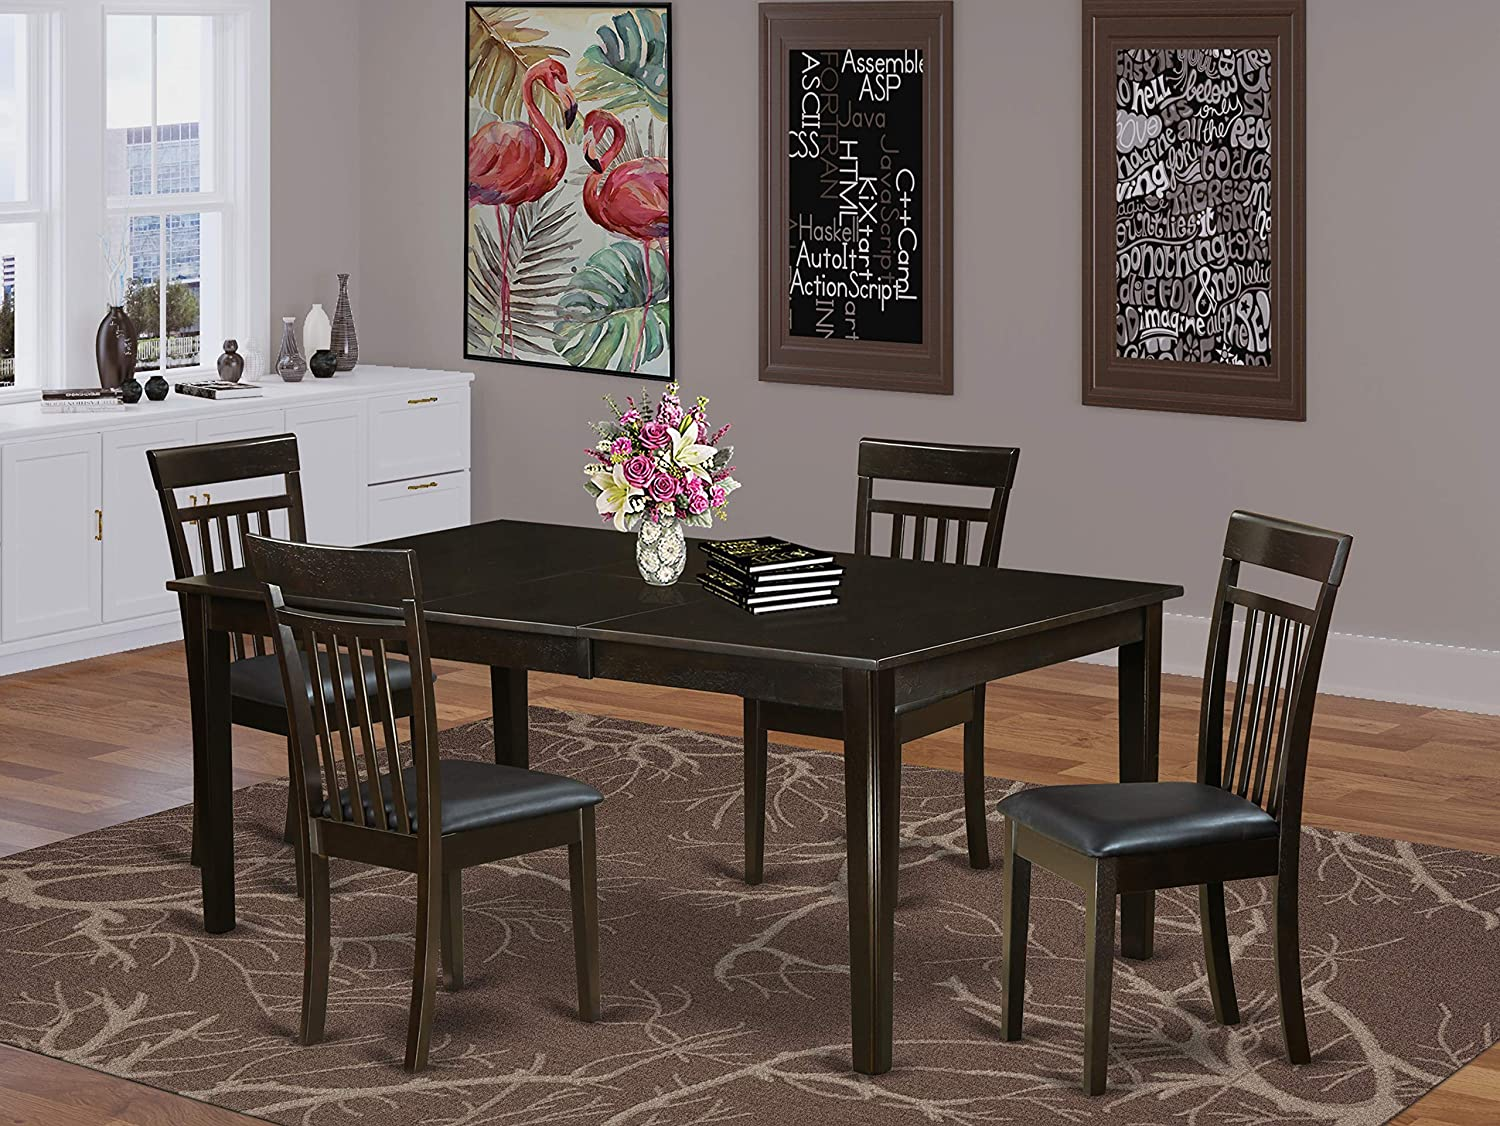 East West Furniture HLaV5-LWH-W 5-Piece Table and Chairs Dining Set Included a Round Dining Table and 4 Kitchen Chairs - Solid Wood Dining Chairs Seat & Slatted Back - Linen White Finish